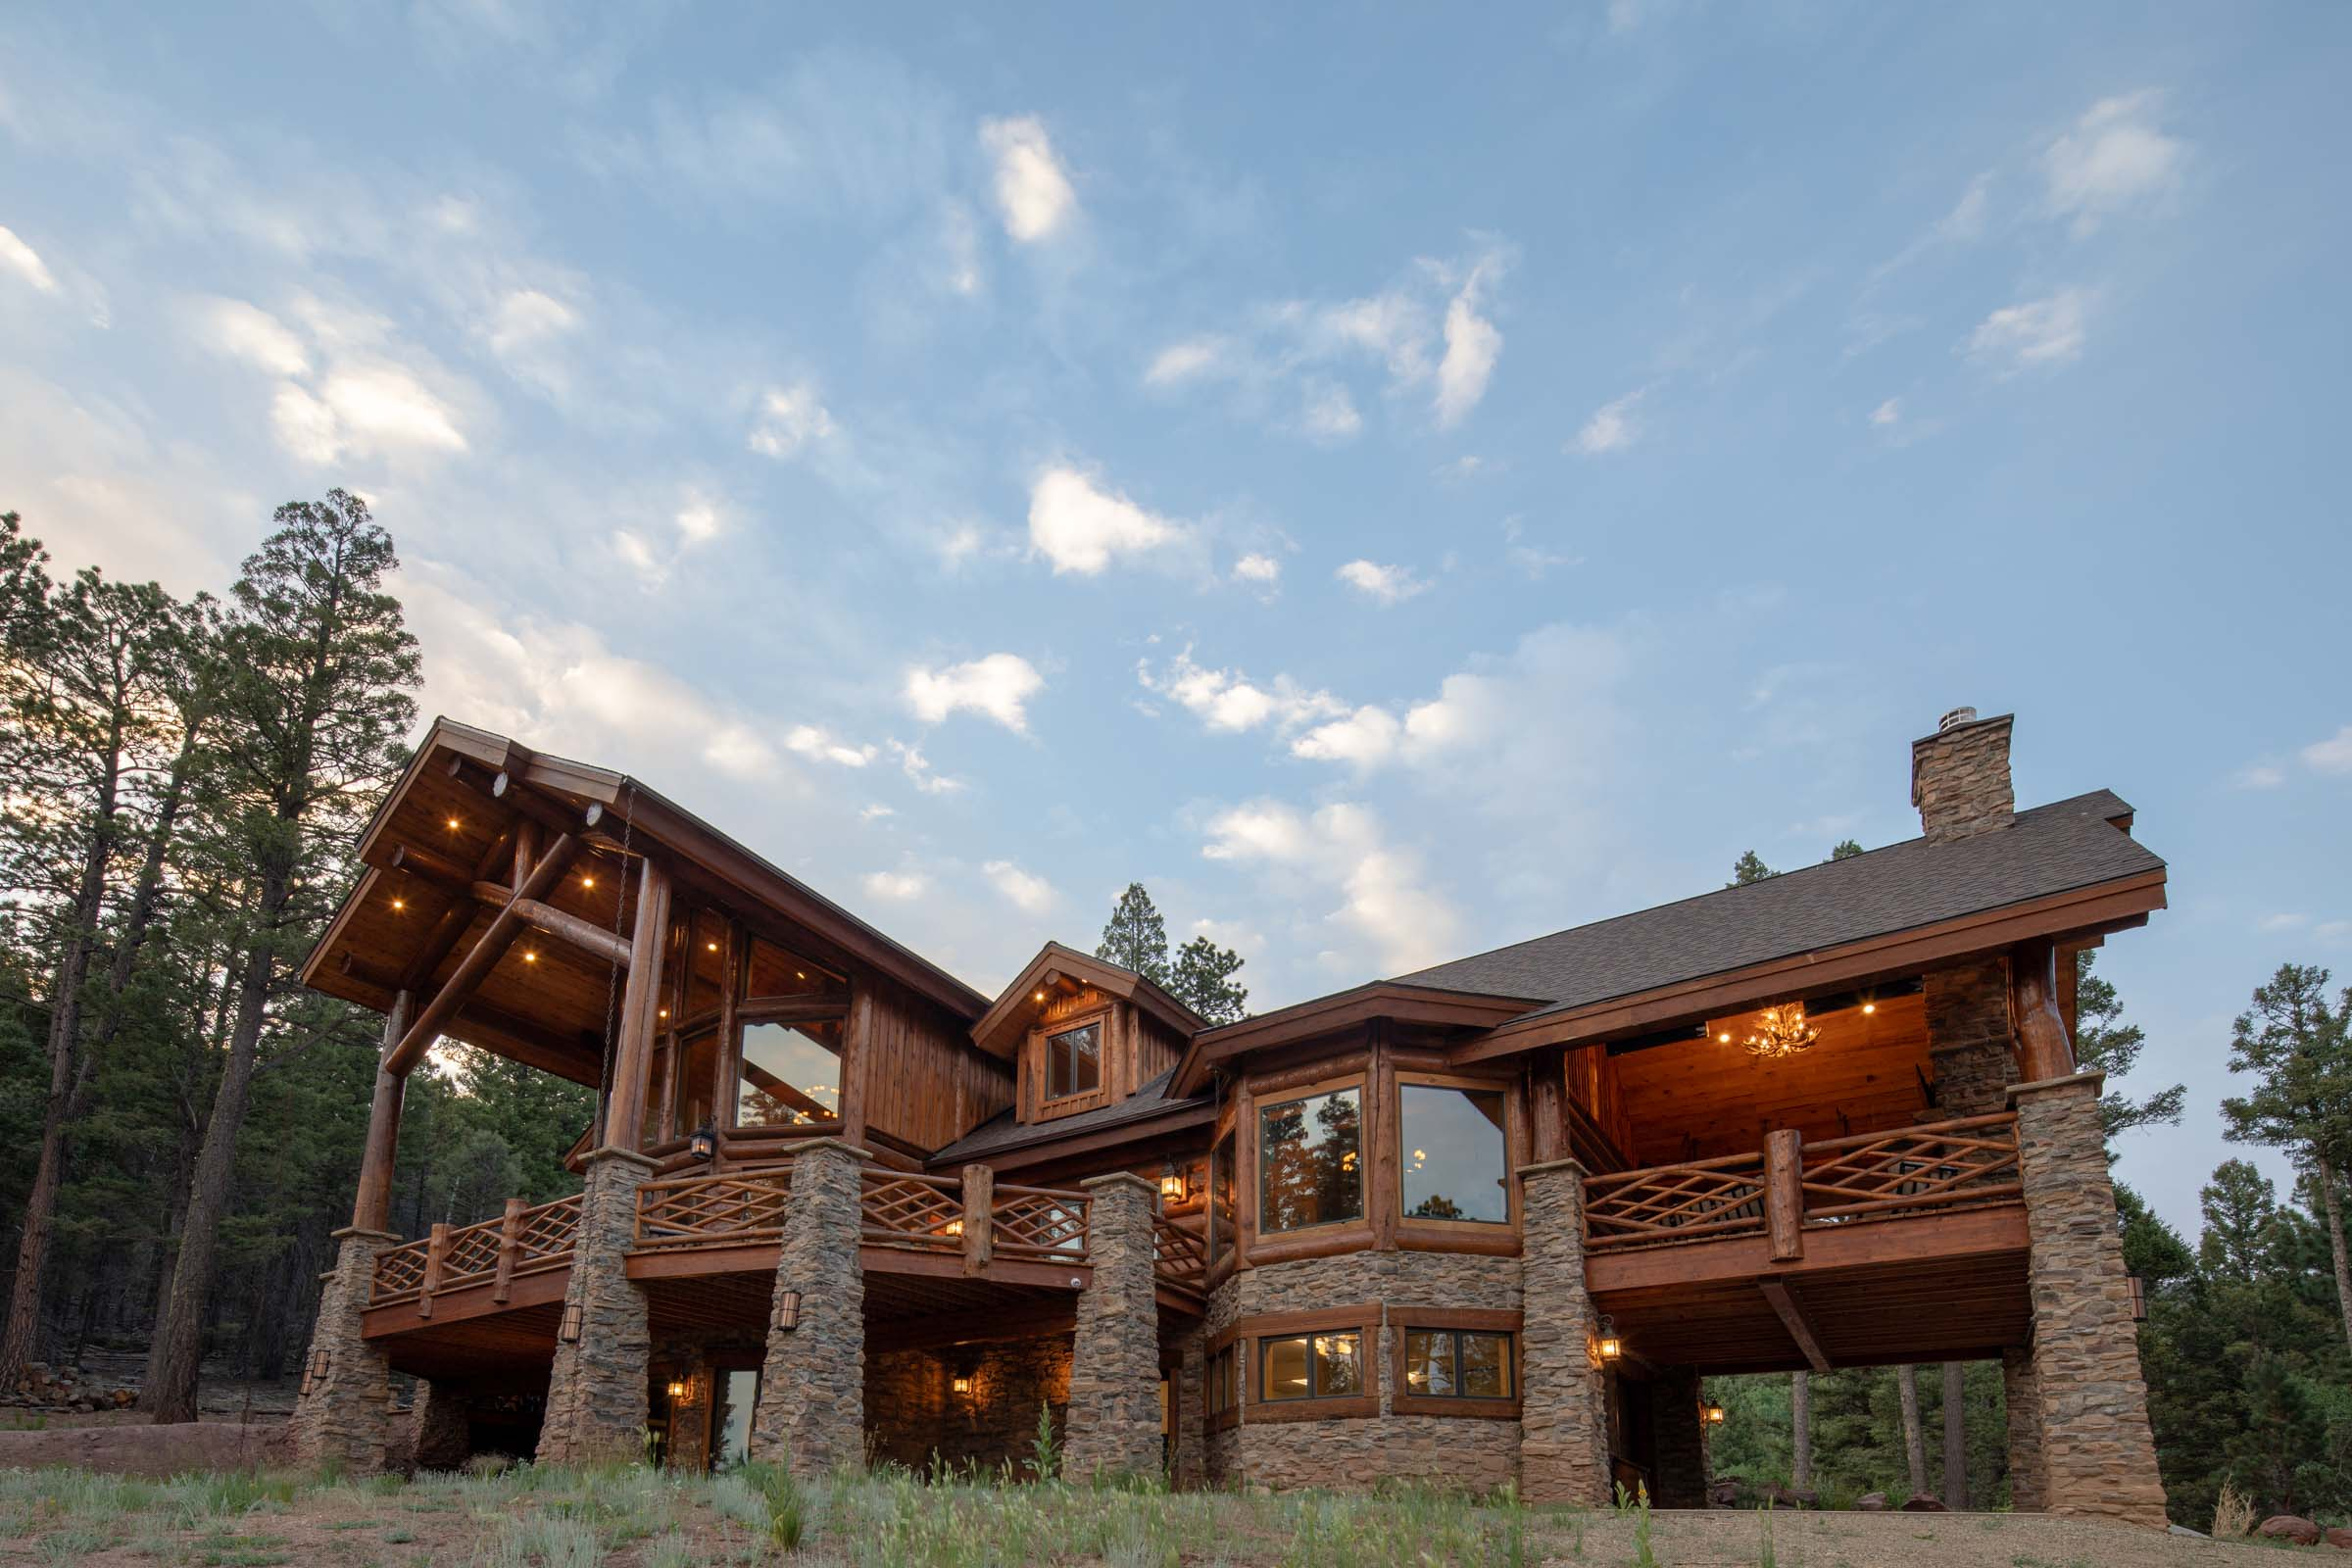 """People's Choice Award"" winner of the 2015 Homebuilder's Parade of Homes.  Gorgeous 15"" Swedish Cope style custom log home with handcrafted log accents set on 10+ acres bordering the Ski Area with Wheeler Peak views and Ski Mountain views.  Grand stone column piers, log truss work and railing with unique designs, spacious outdoor living area/deck with kitchen, exterior heaters, television, stone fireplace and views all around.  Chef's kitchen with high-end appliances, granite and extras.  Lower level bunk room, living/game area and ski lockers off over-sized two car garage.  Grand great room with artisan chandeliers, stone fireplace and large windows.  Lots of outdoor living areas, fire pit with flagstone patio off lower level and large decks above including hot tub off master.  Master bedroom features handcrafted posts, large walk-in closet and private master bath with copper tub.  Ski deck close to property line that is adjacent to ski area.  Home has remote control Insteon lighting system that controls all lights remotely and HEOS sound system that can be activated from a smart phone."